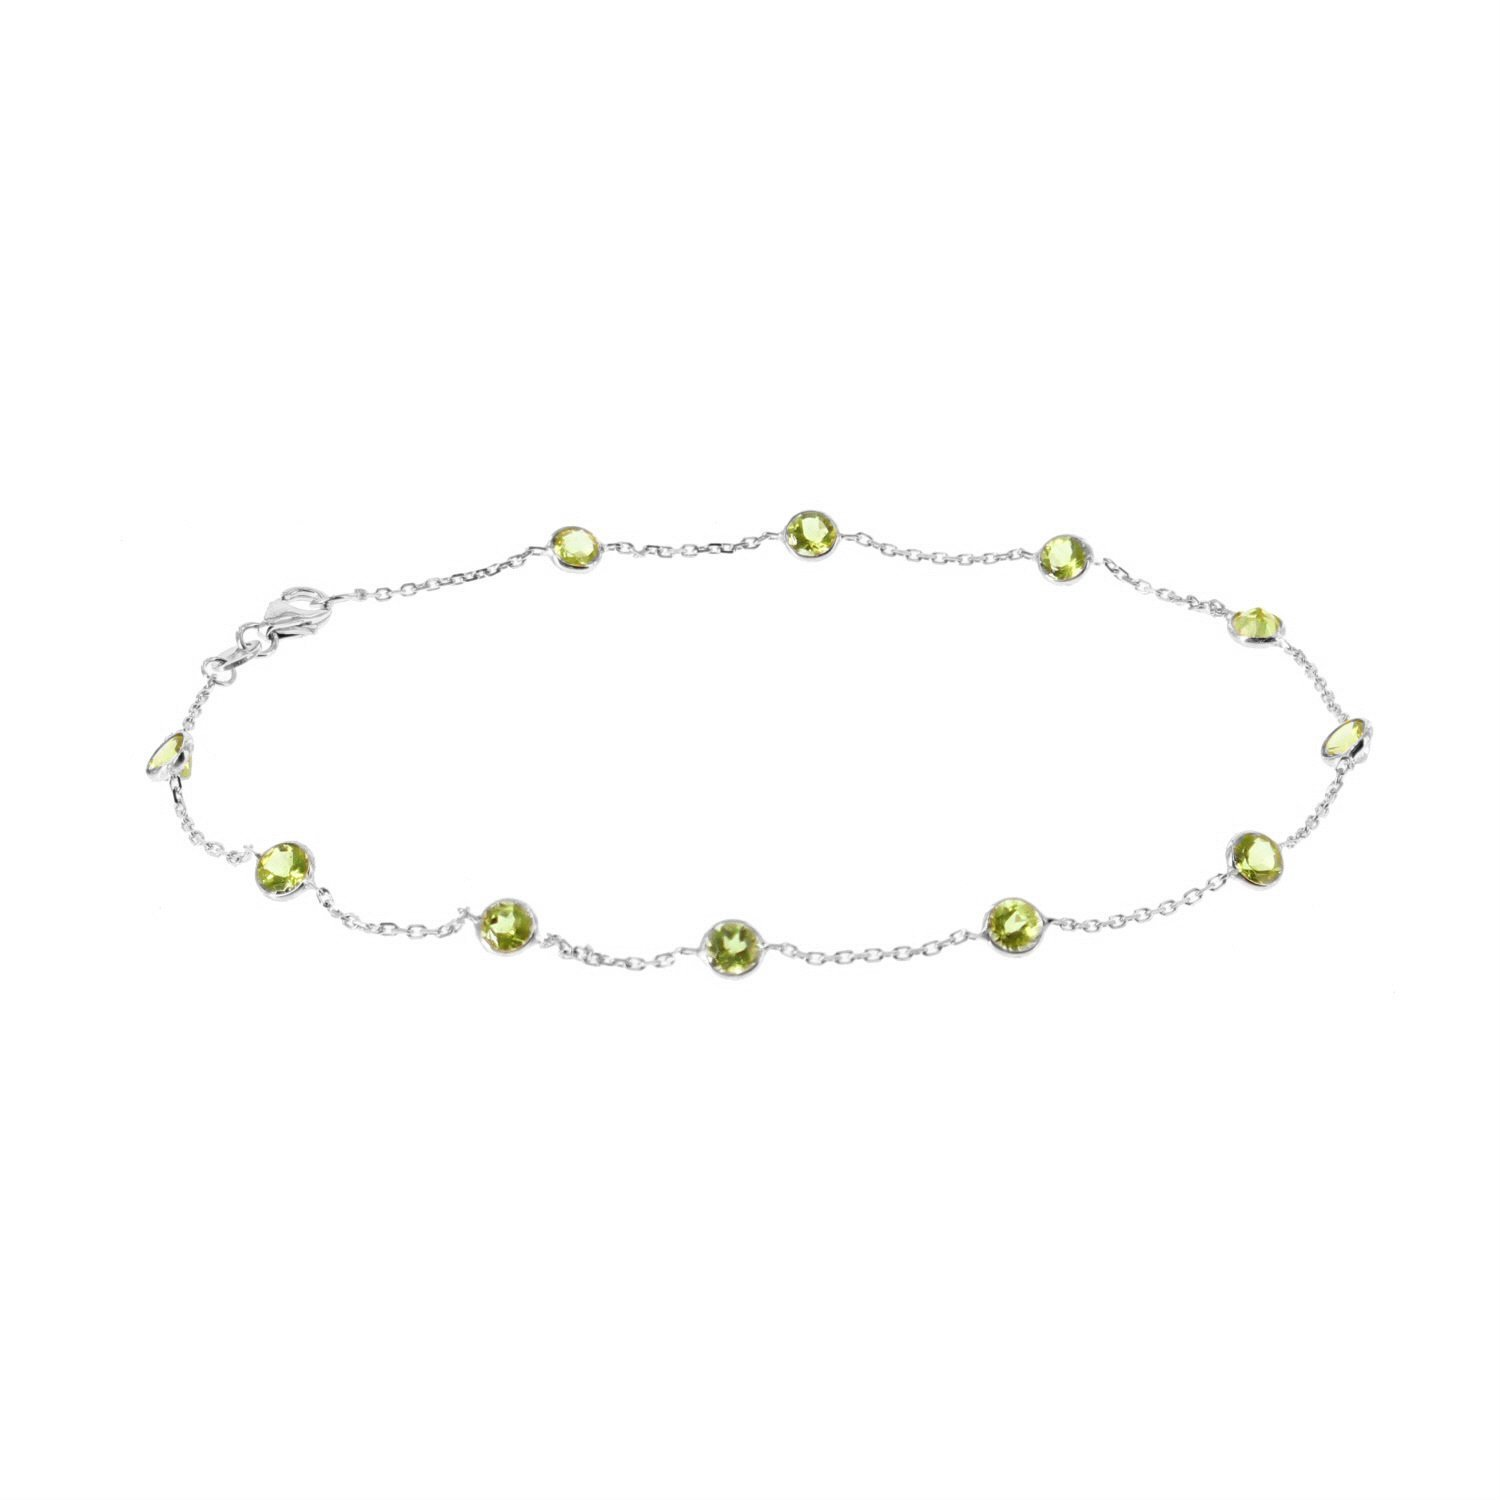 14k White Gold Handmade Station Anklet With Peridot Gemstones 9 - 11 Inches